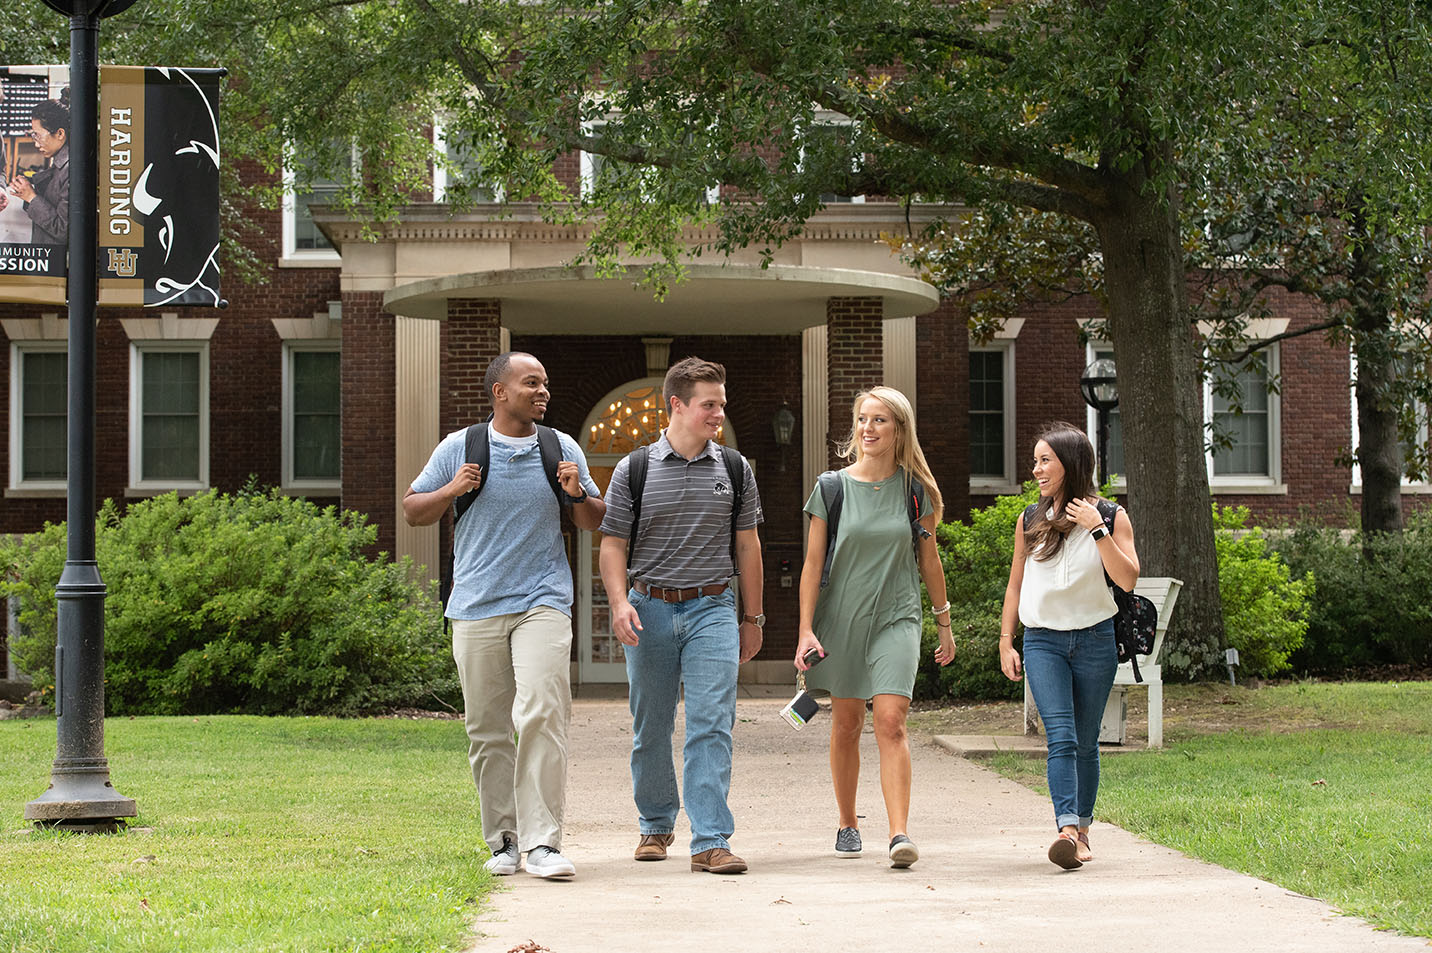 This is a photo of students walking on campus.